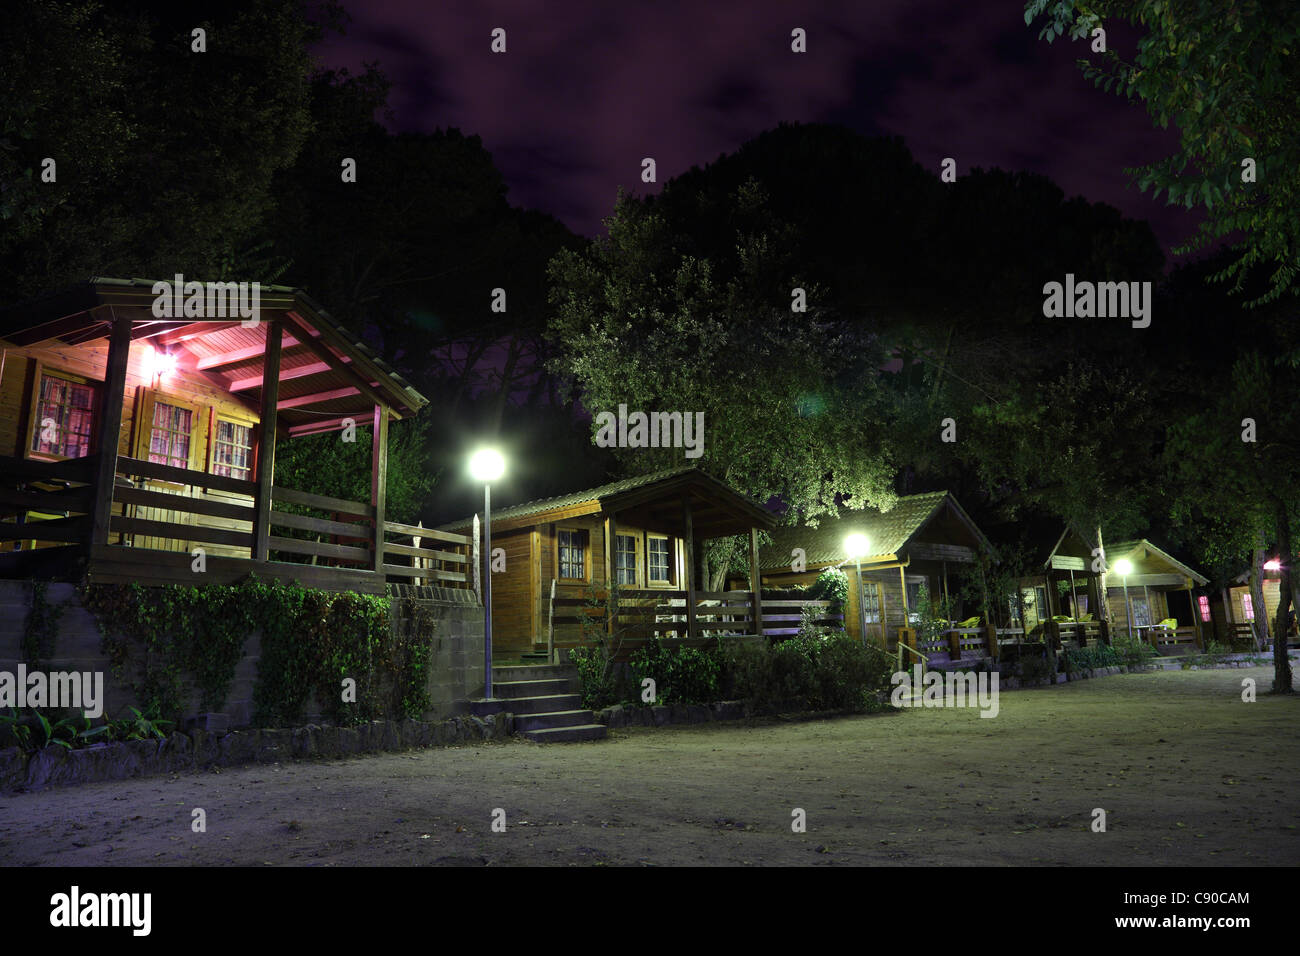 Log cabins on a camping site at night - Stock Image